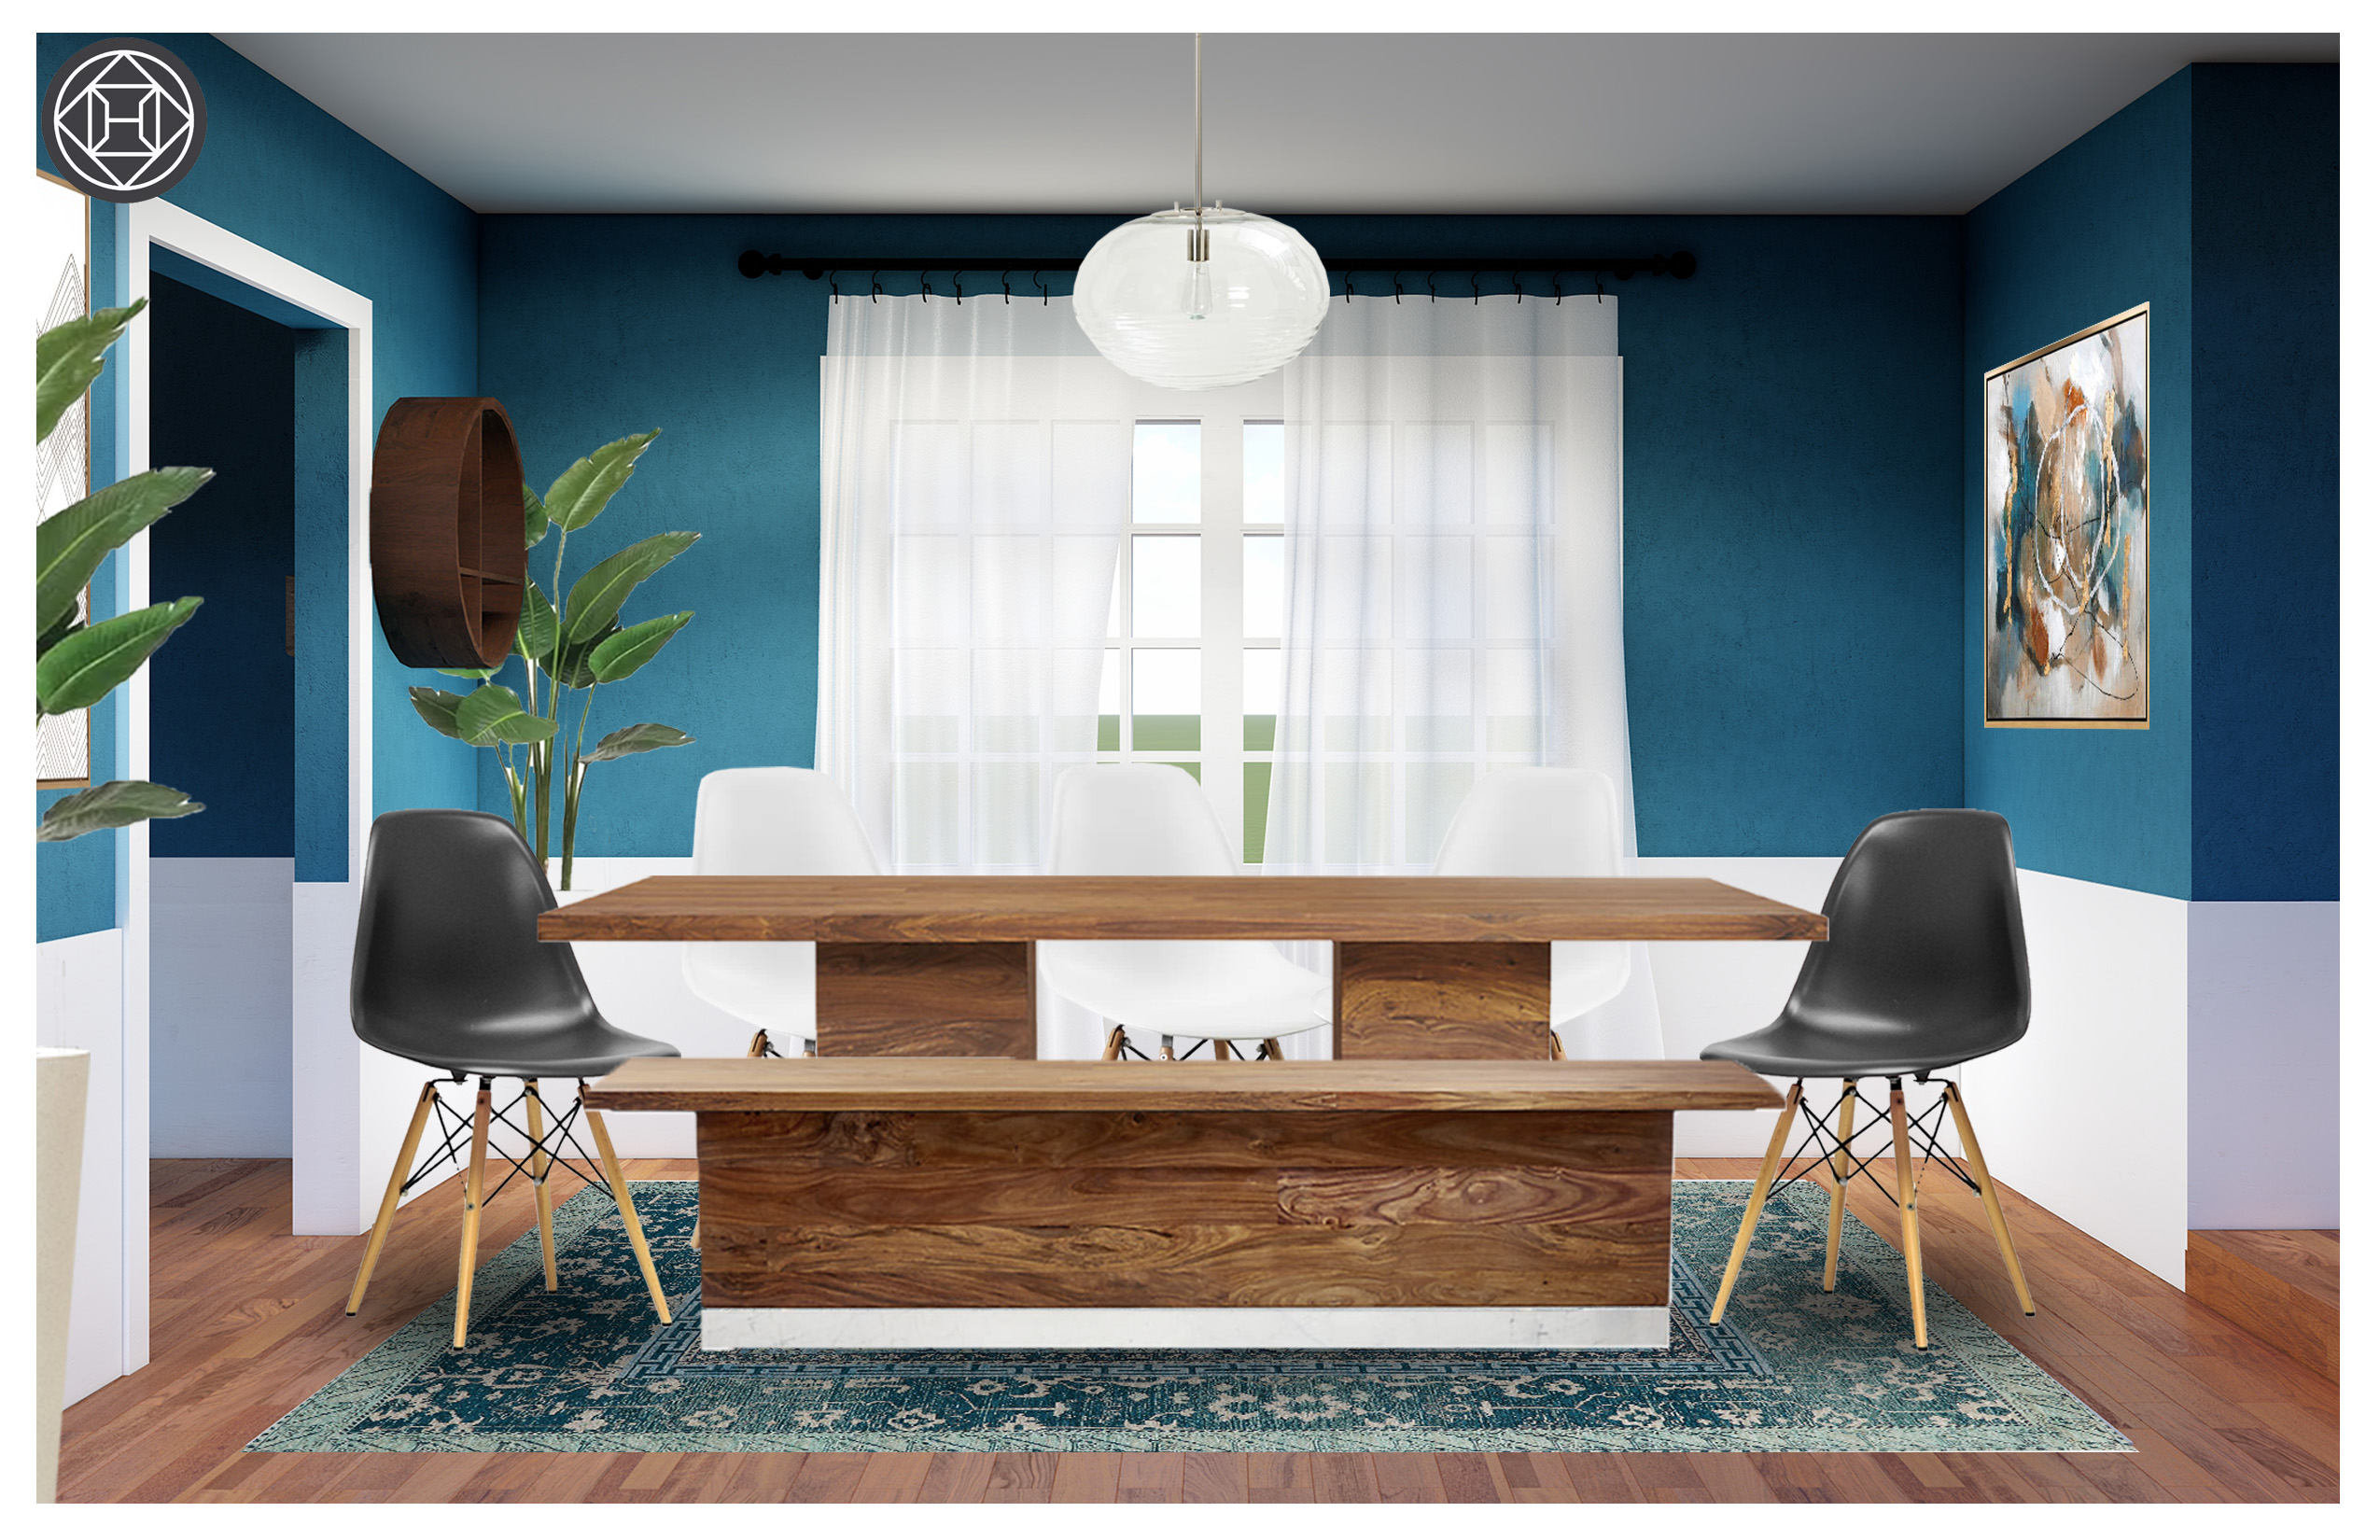 Terrific Eclectic Dining Room Design By Havenly Interior Designer Julio Caraccident5 Cool Chair Designs And Ideas Caraccident5Info